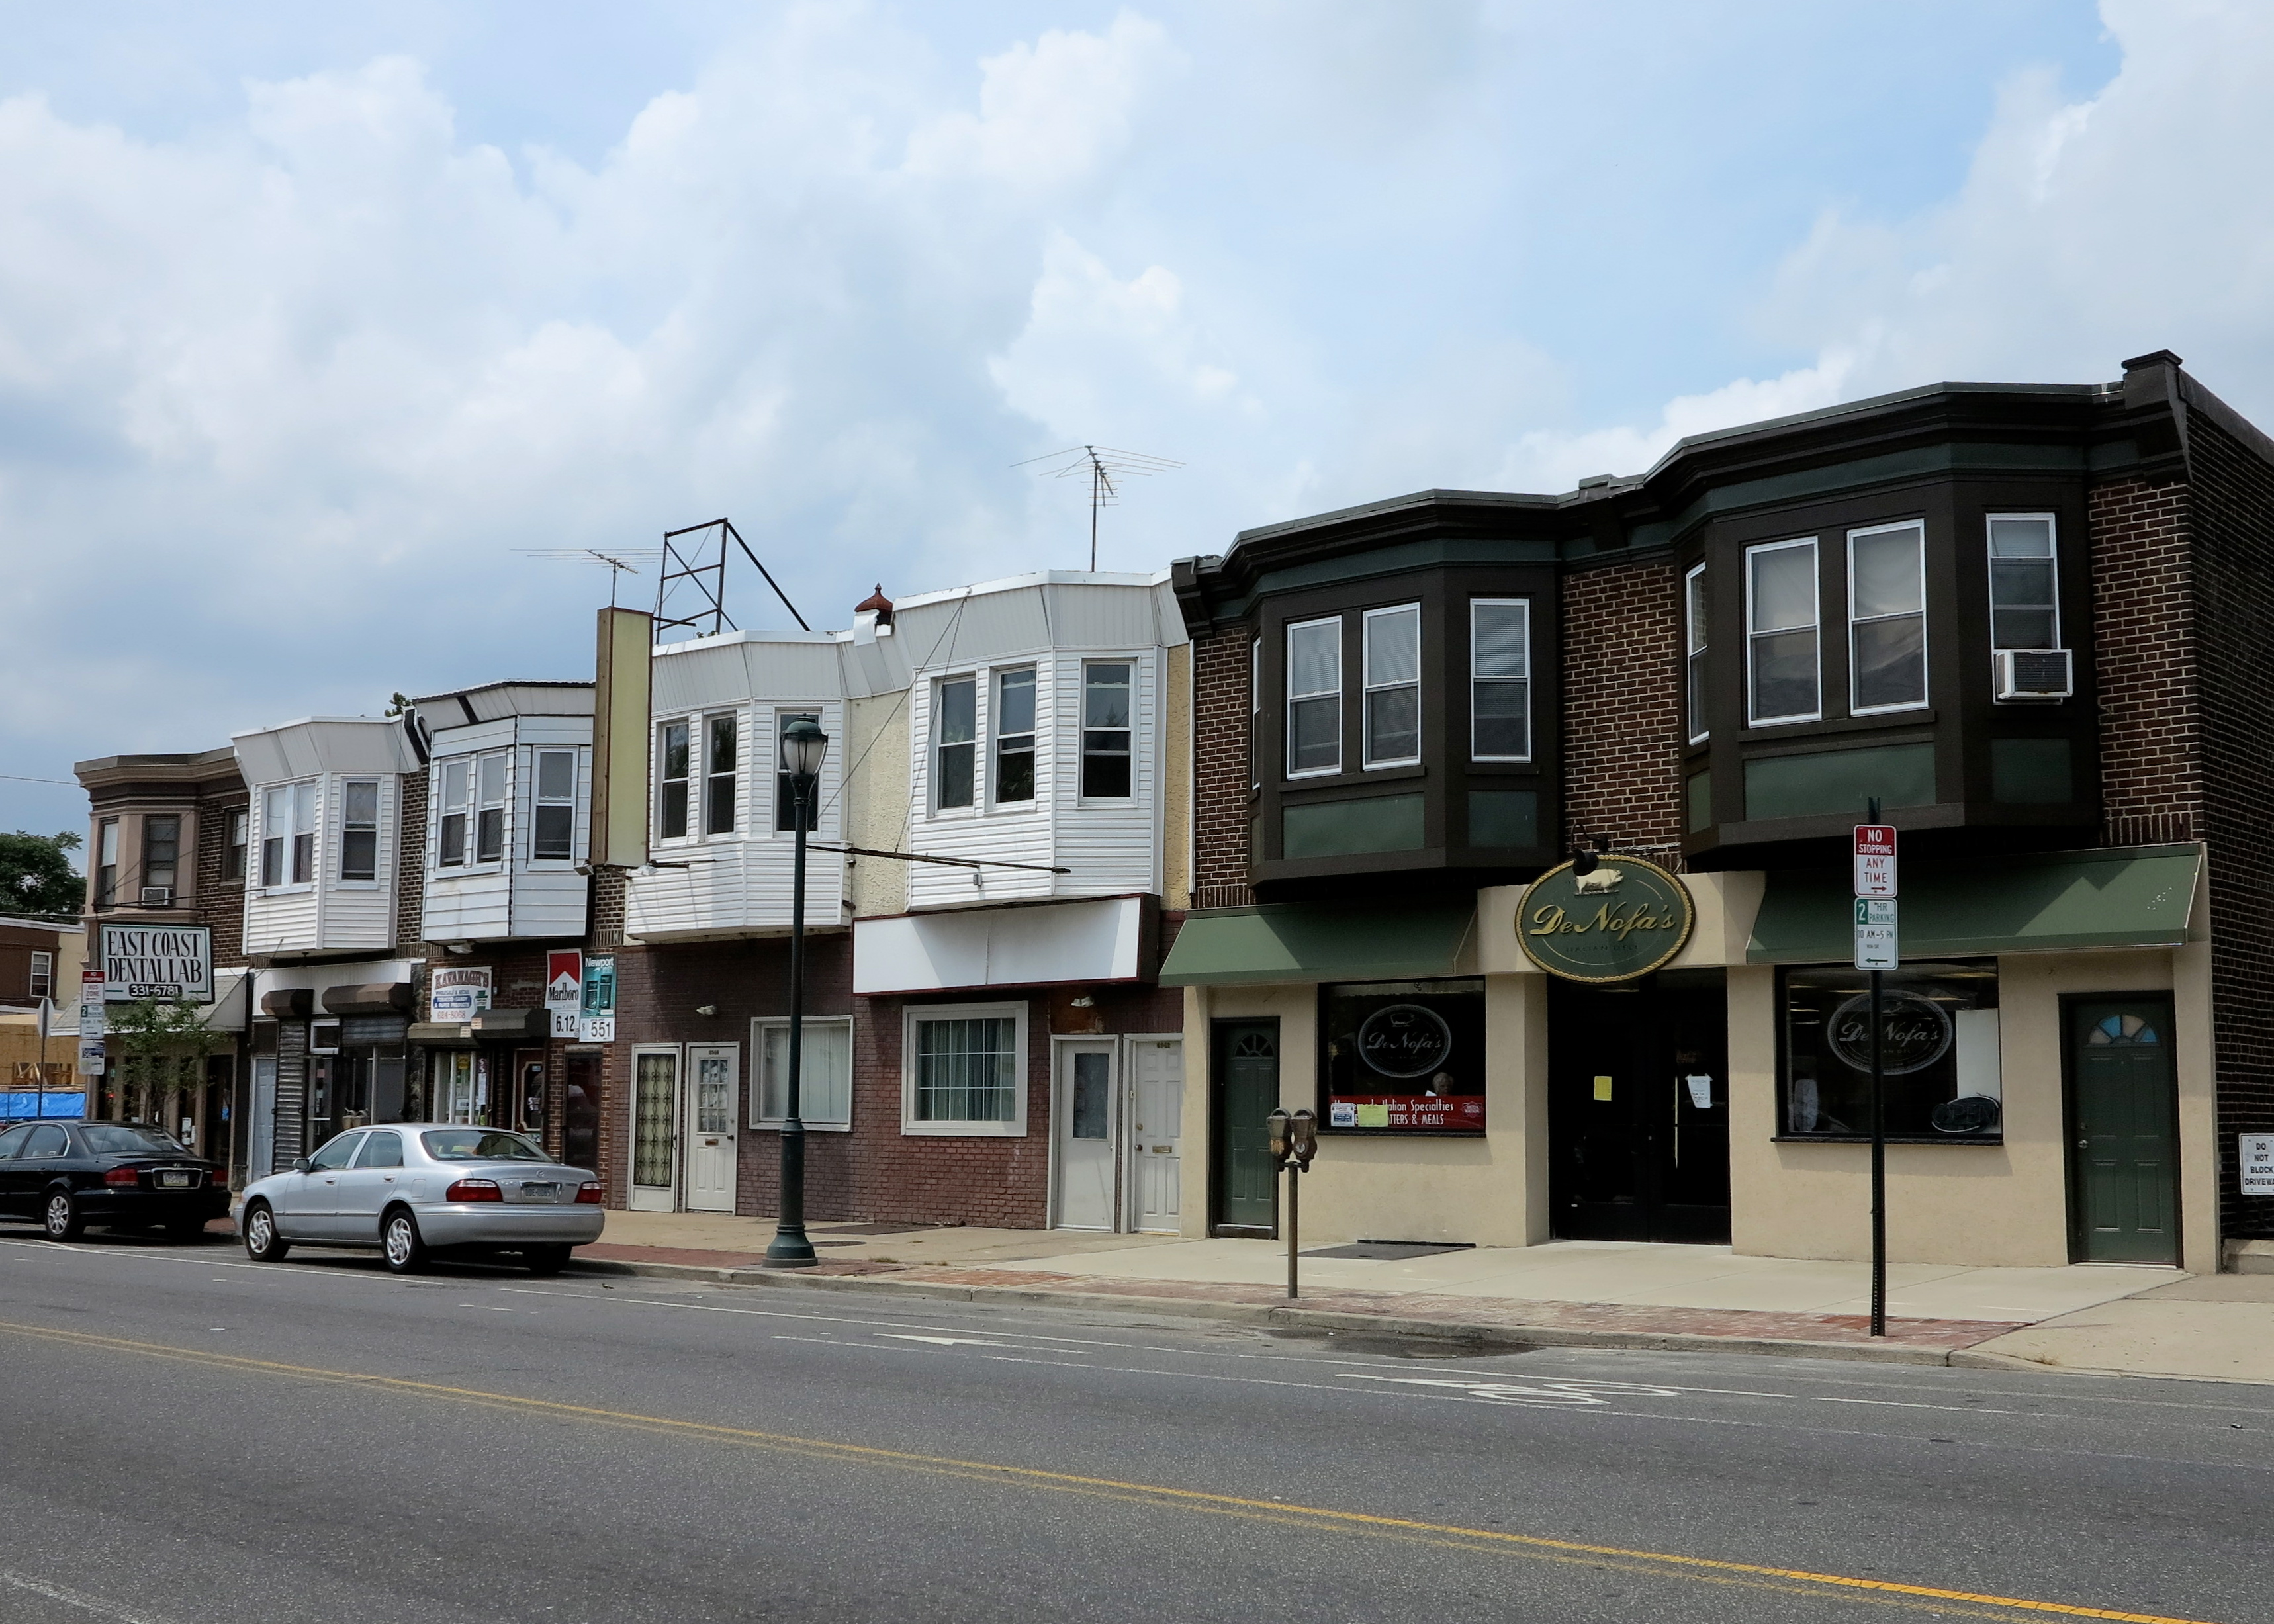 Both East Cost Dental Lab (6936 Torresdale) and Kavanagh's Tobacco (6938 Torresdale) next door will be given distinctive facelifts this fall.